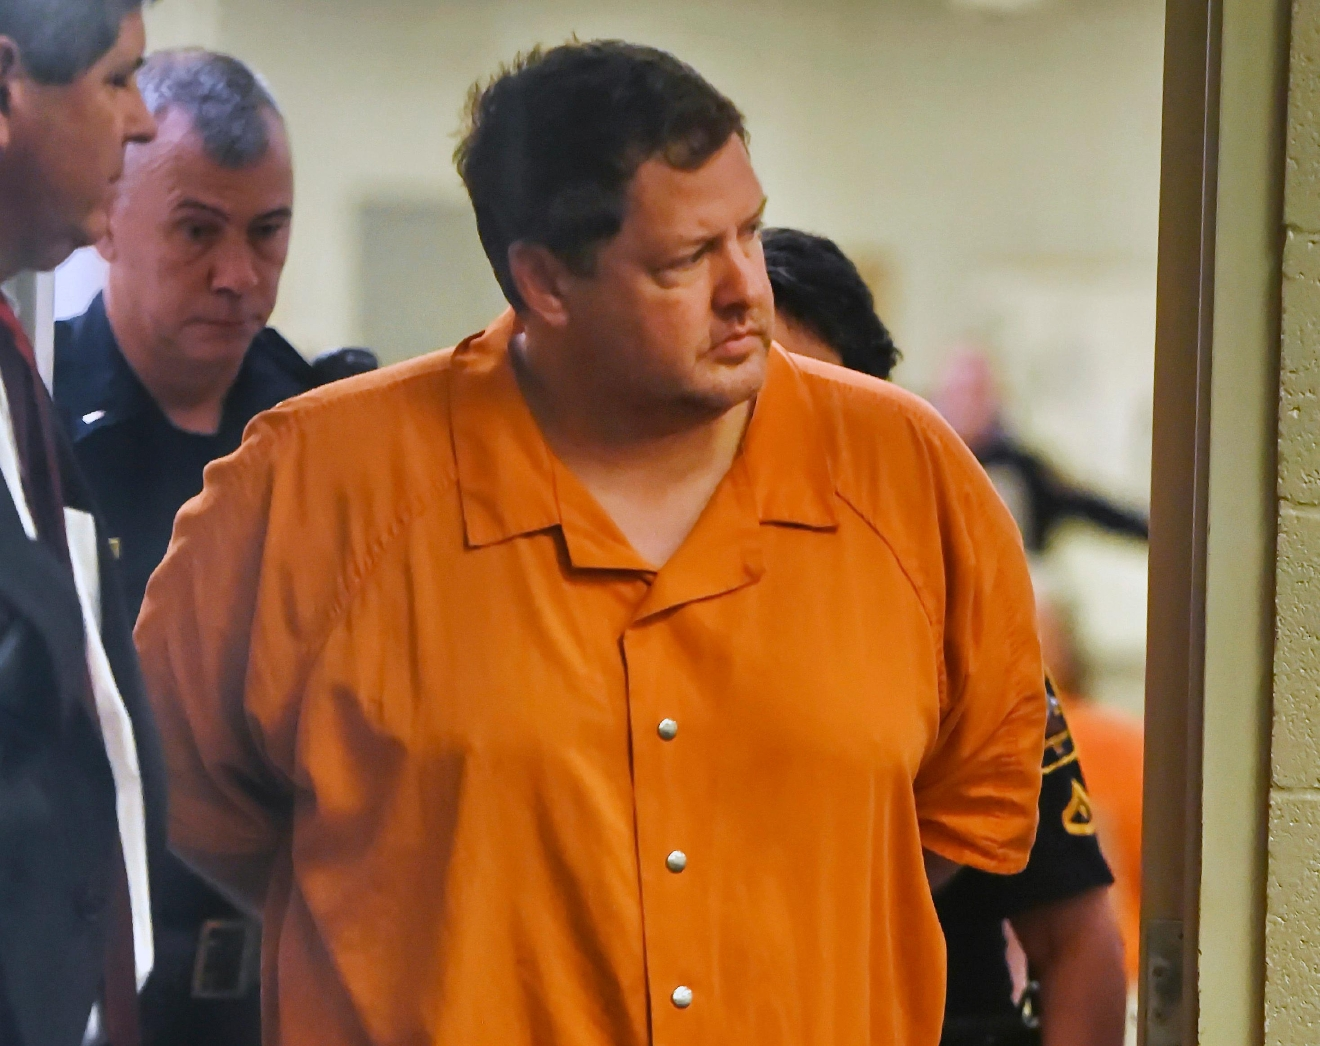 FILE - In this Sunday, Nov. 6, 2016, file photo, Todd Kohlhepp's enters the courtroom of Judge Jimmy Henson for a bond hearing at the Spartanburg Detention Facility in Spartanburg, S.C. A South Carolina woman who spent two months chained inside a metal container says her captor bragged that he was good at killing people and warned her she could be next if she fought back or ran. Brown and her boyfriend had been missing since Aug. 31, when they went to Kohlhepp's rural property, thinking they were going to clear underbrush. (AP Photo/Richard Shiro, File)